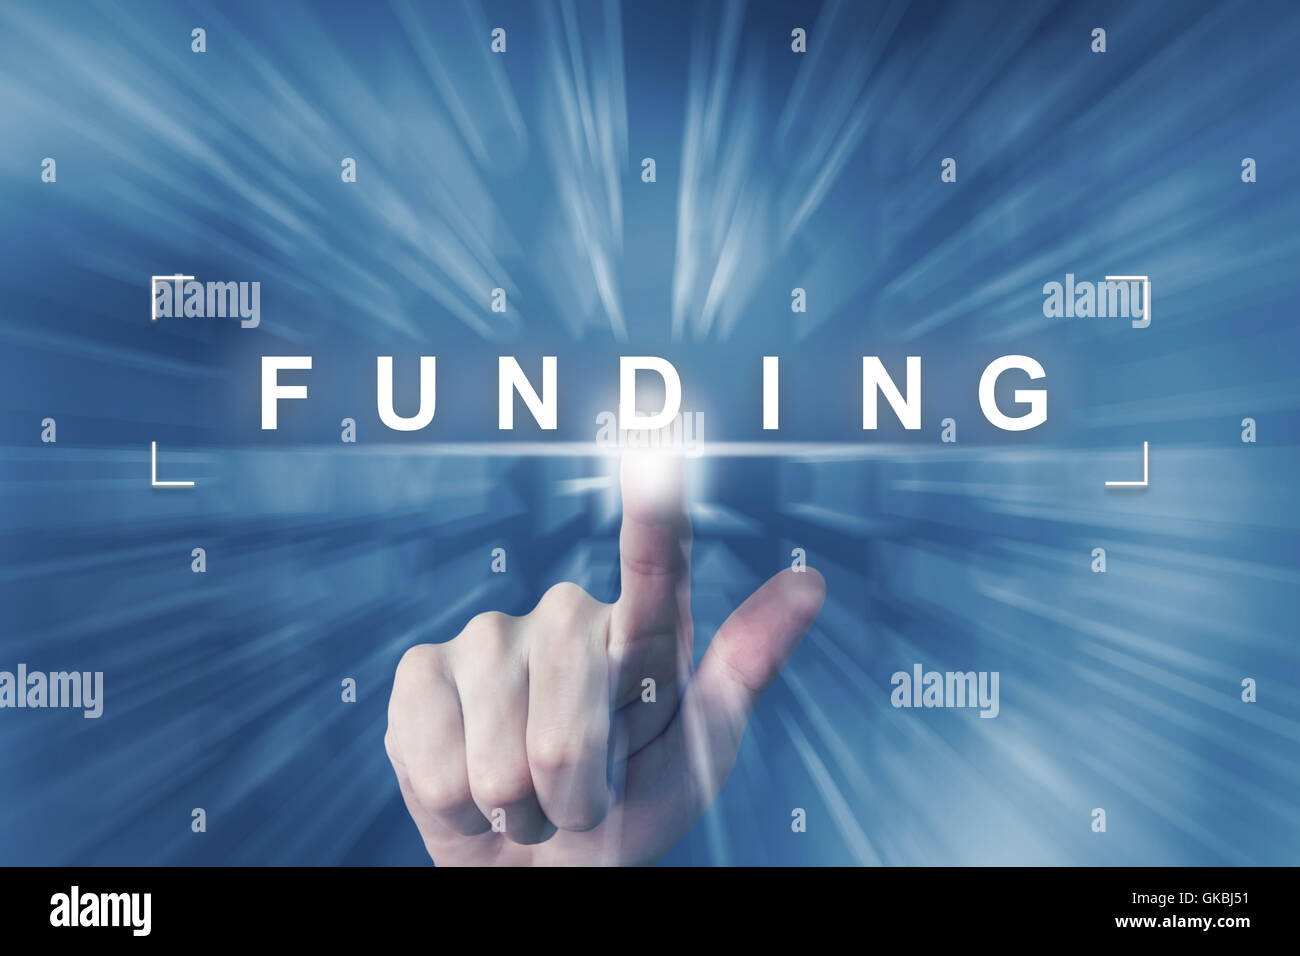 hand clicking on financial funding button with zoom effect background Stock Photo